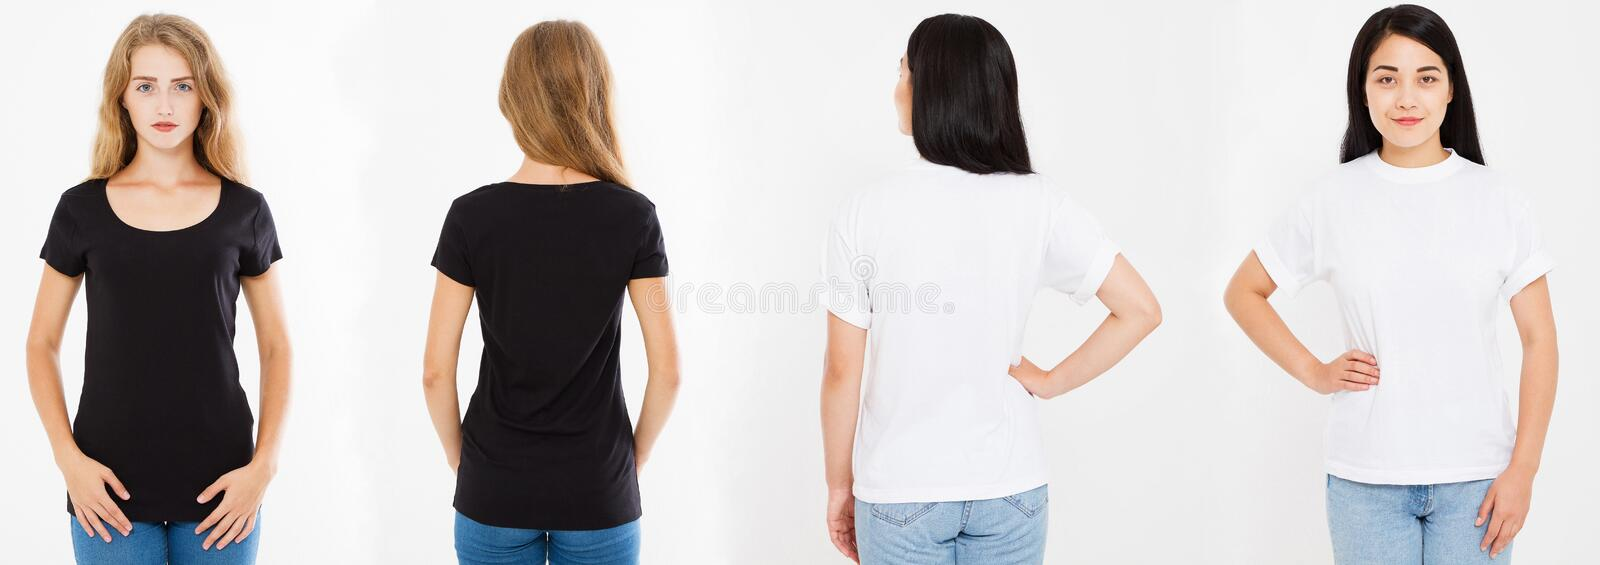 Two women,girls with blank t-shirt isolated, collage caucasian and asian woman in tshirt, blak and white t shirt stock photos